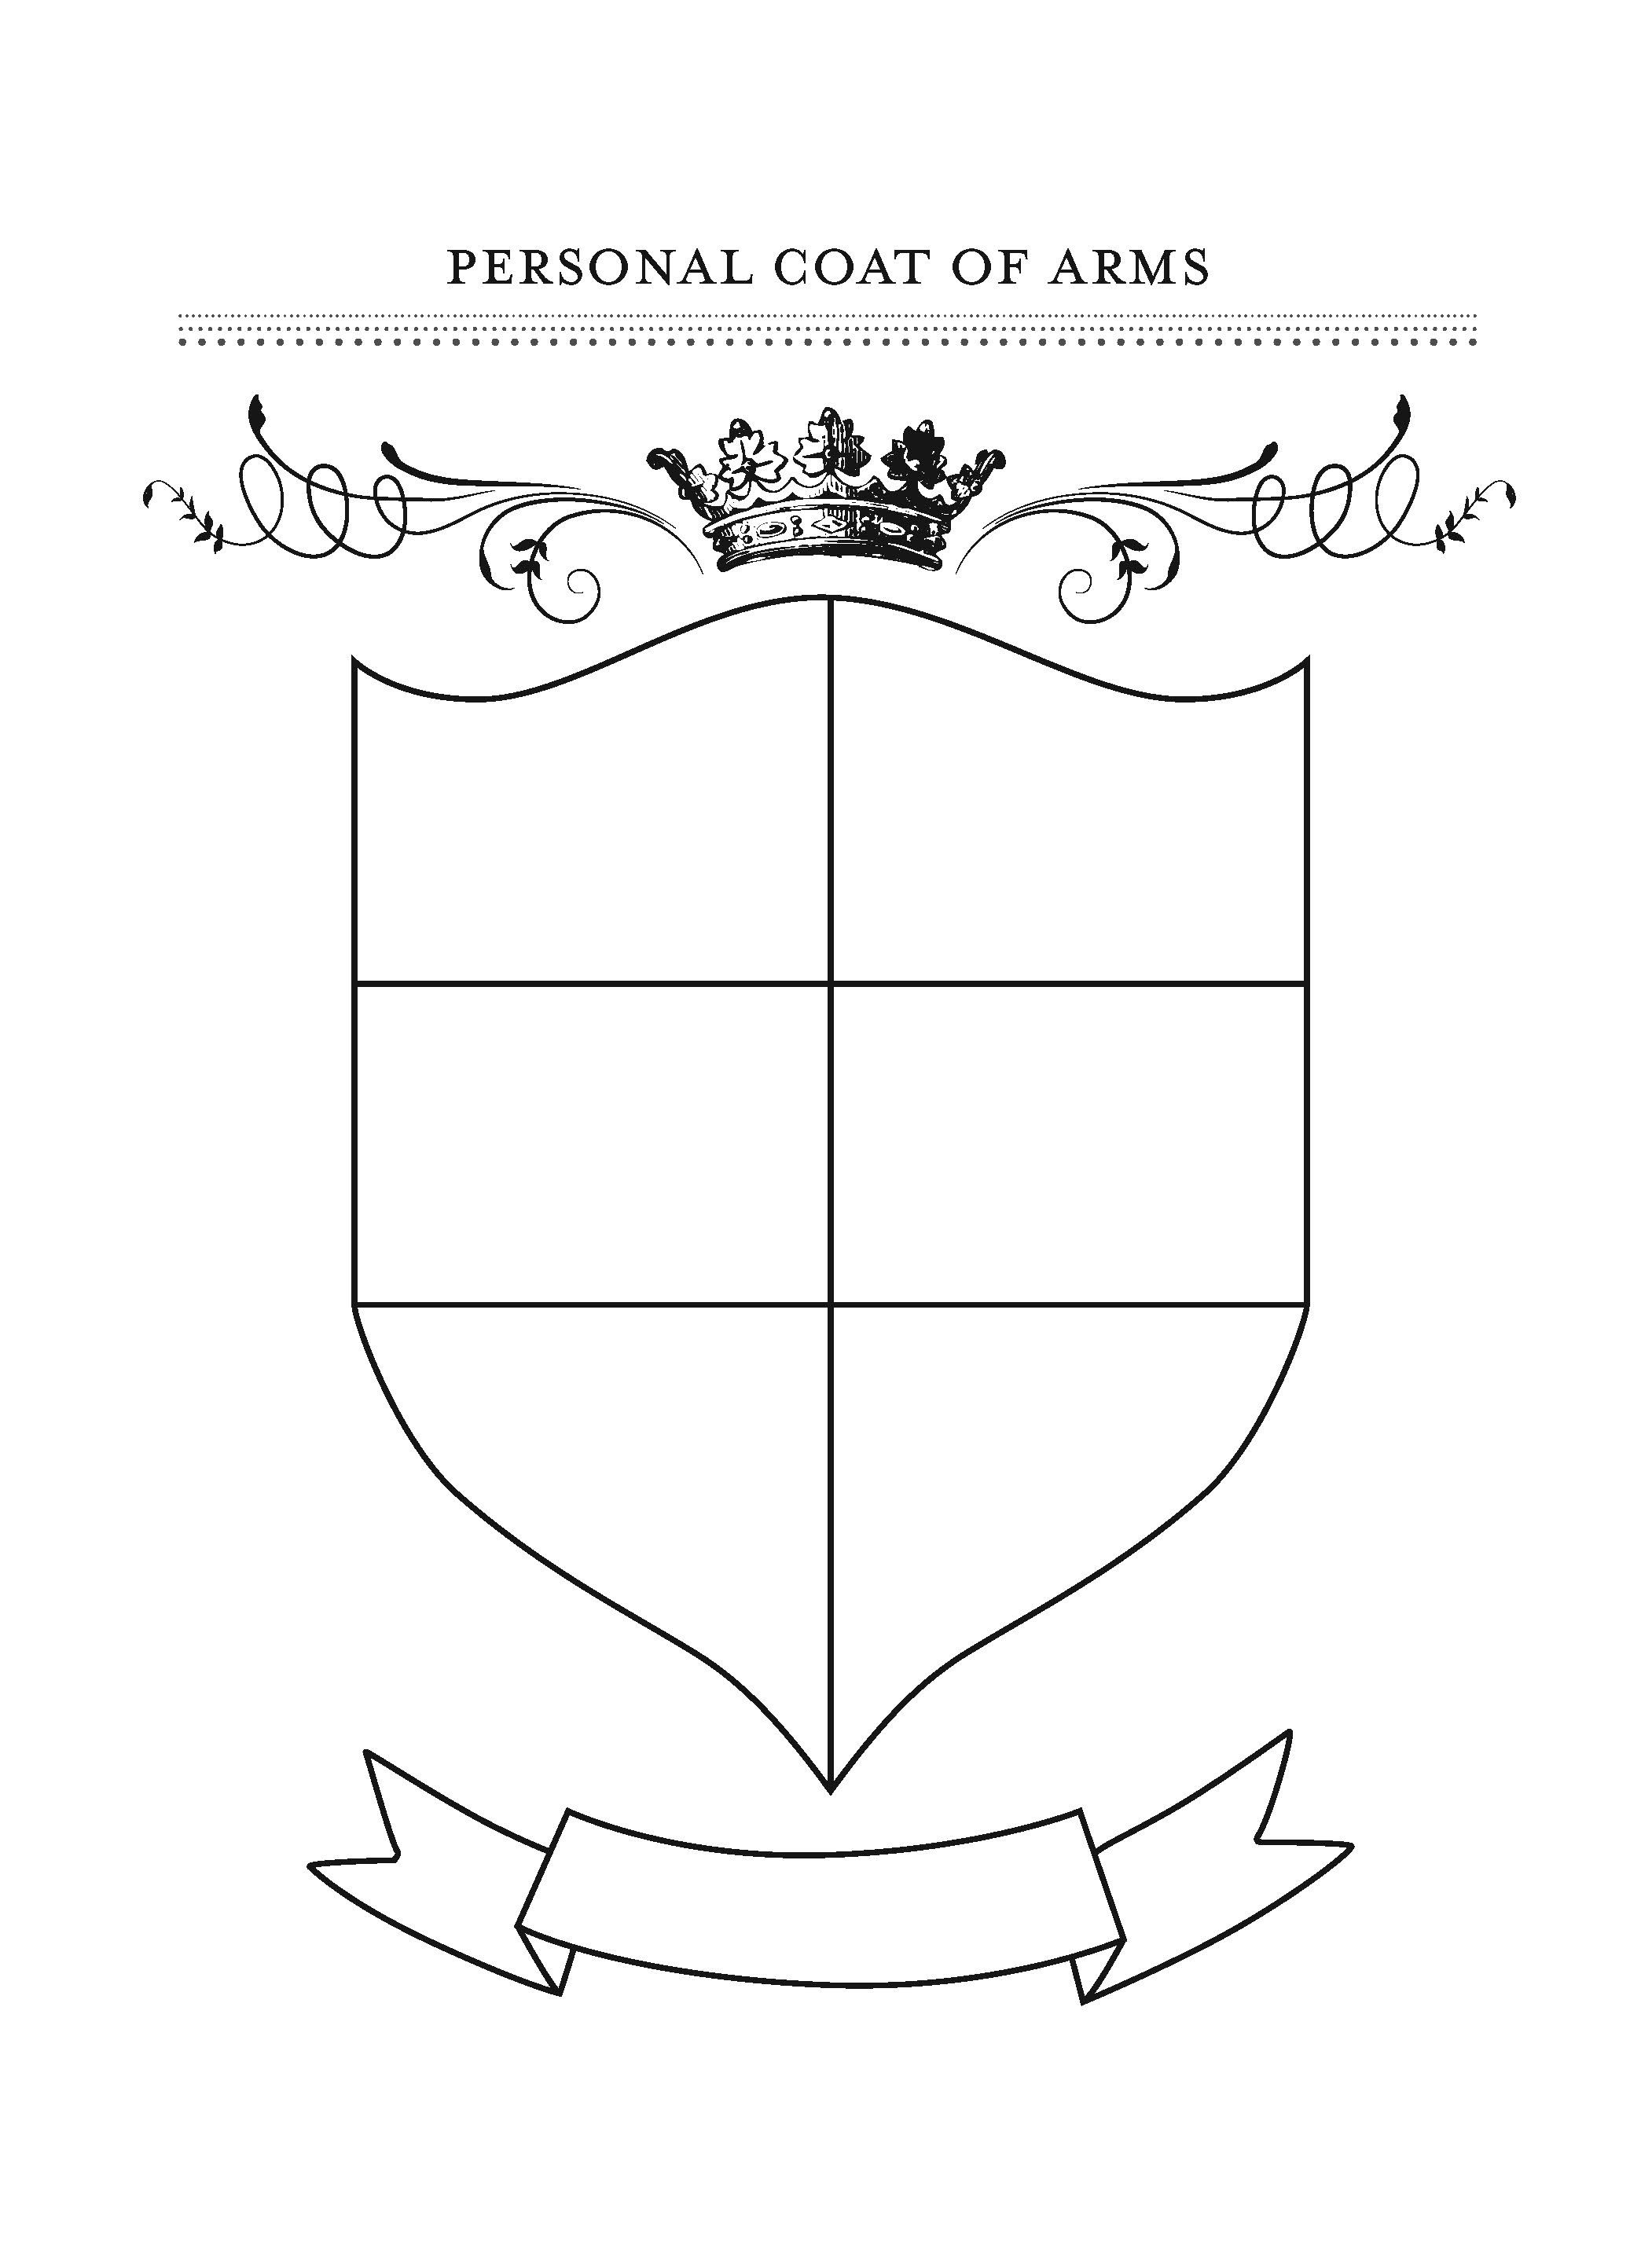 Honor Your Family With Fun Gratitude Crafts | Preschool | Printable Coat Of Arms Worksheet